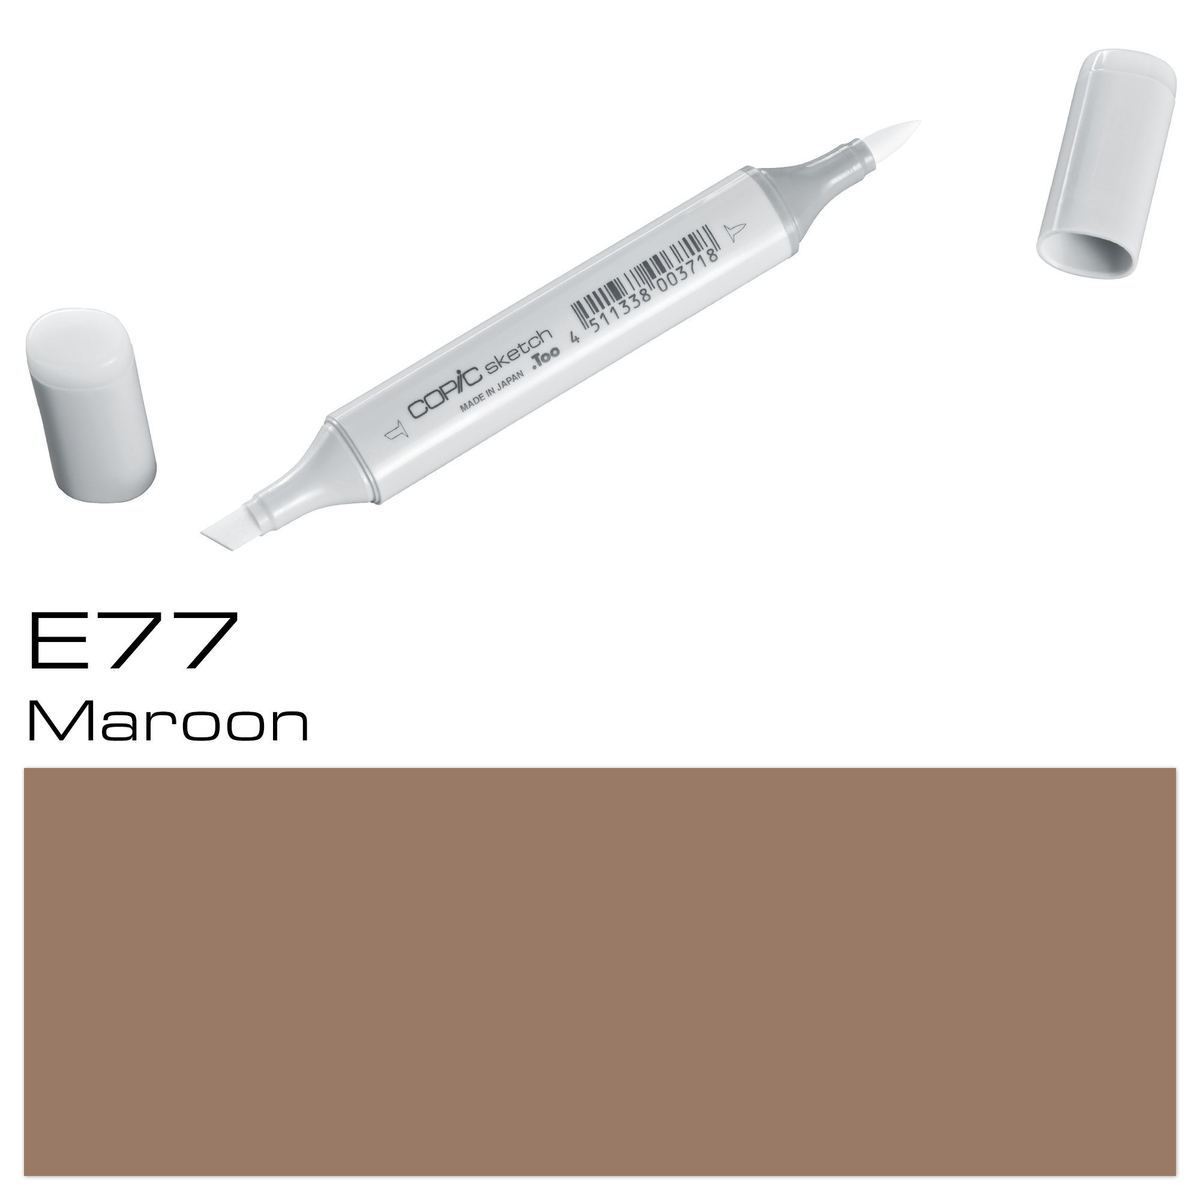 Copic Sketch E 77 maroon